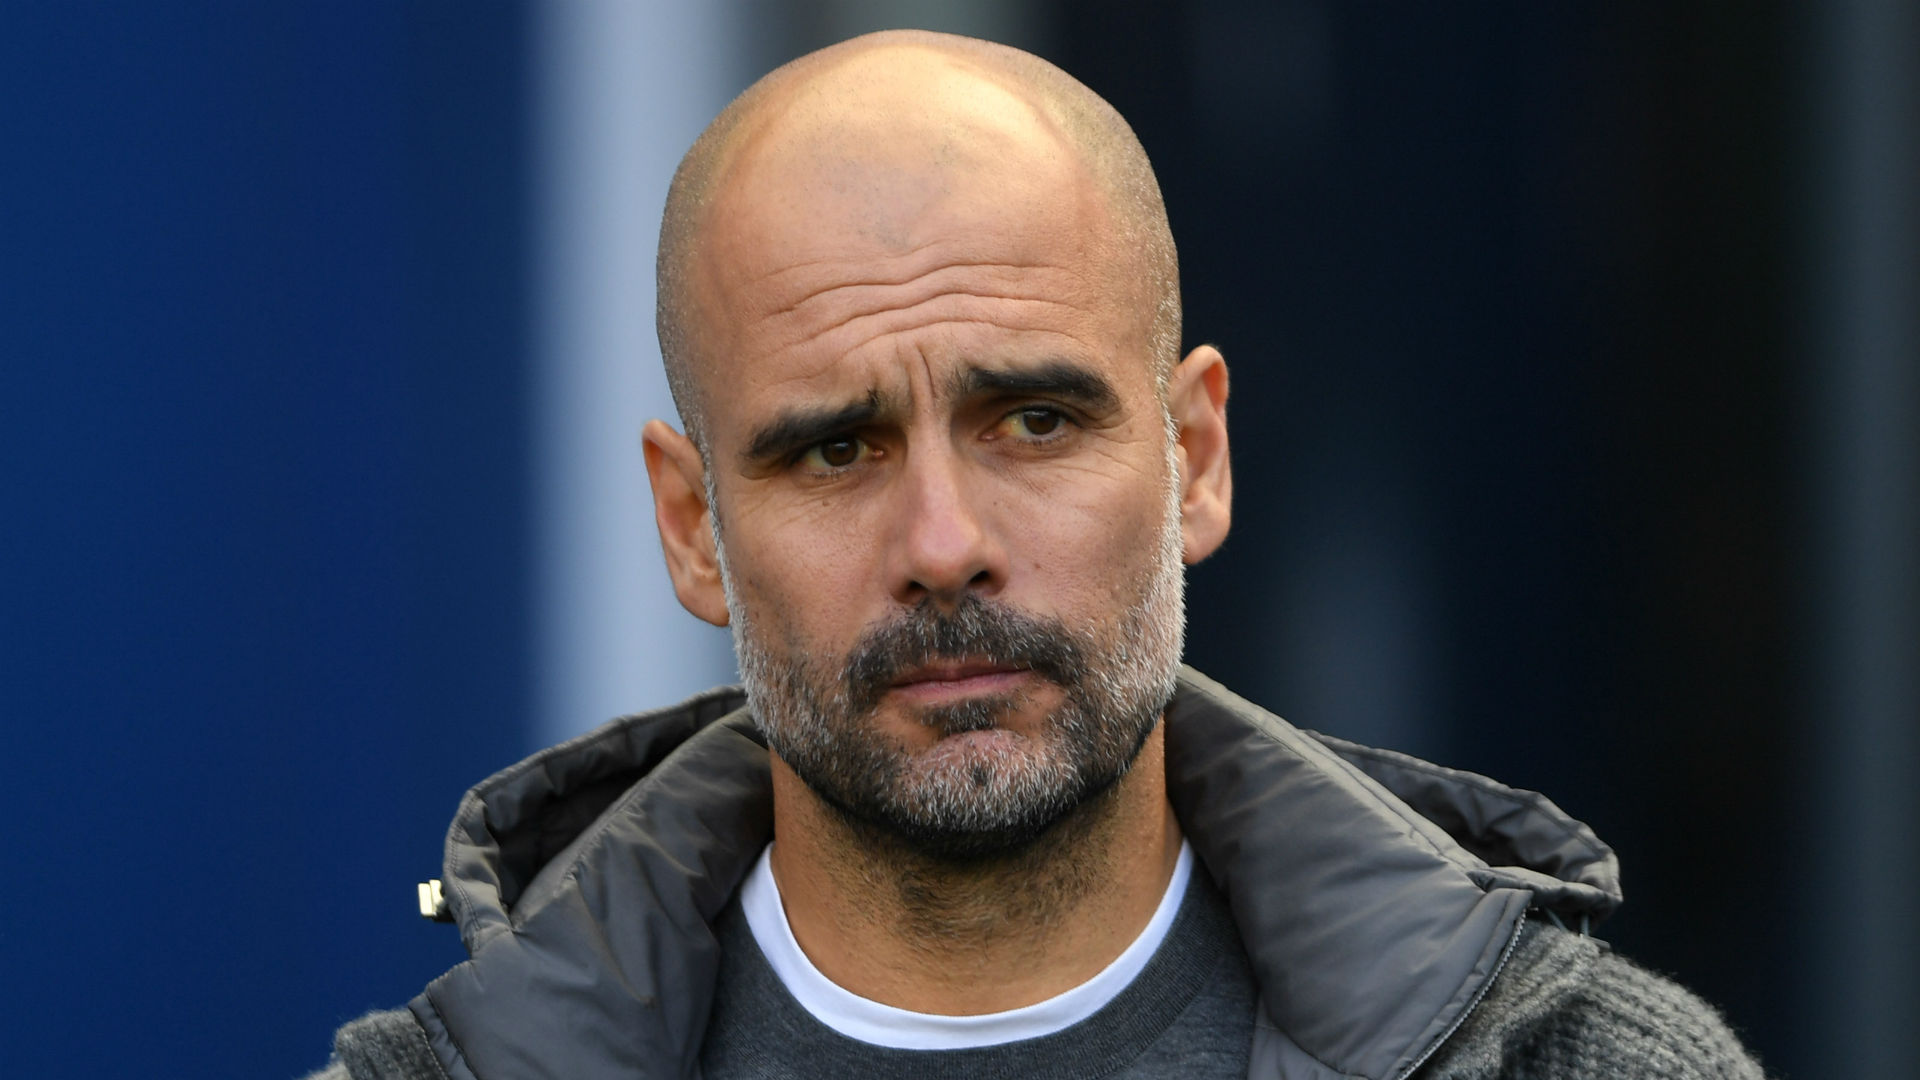 'Football gives you another chance' - Guardiola agrees Man City need to win Champions League to be considered the greatest